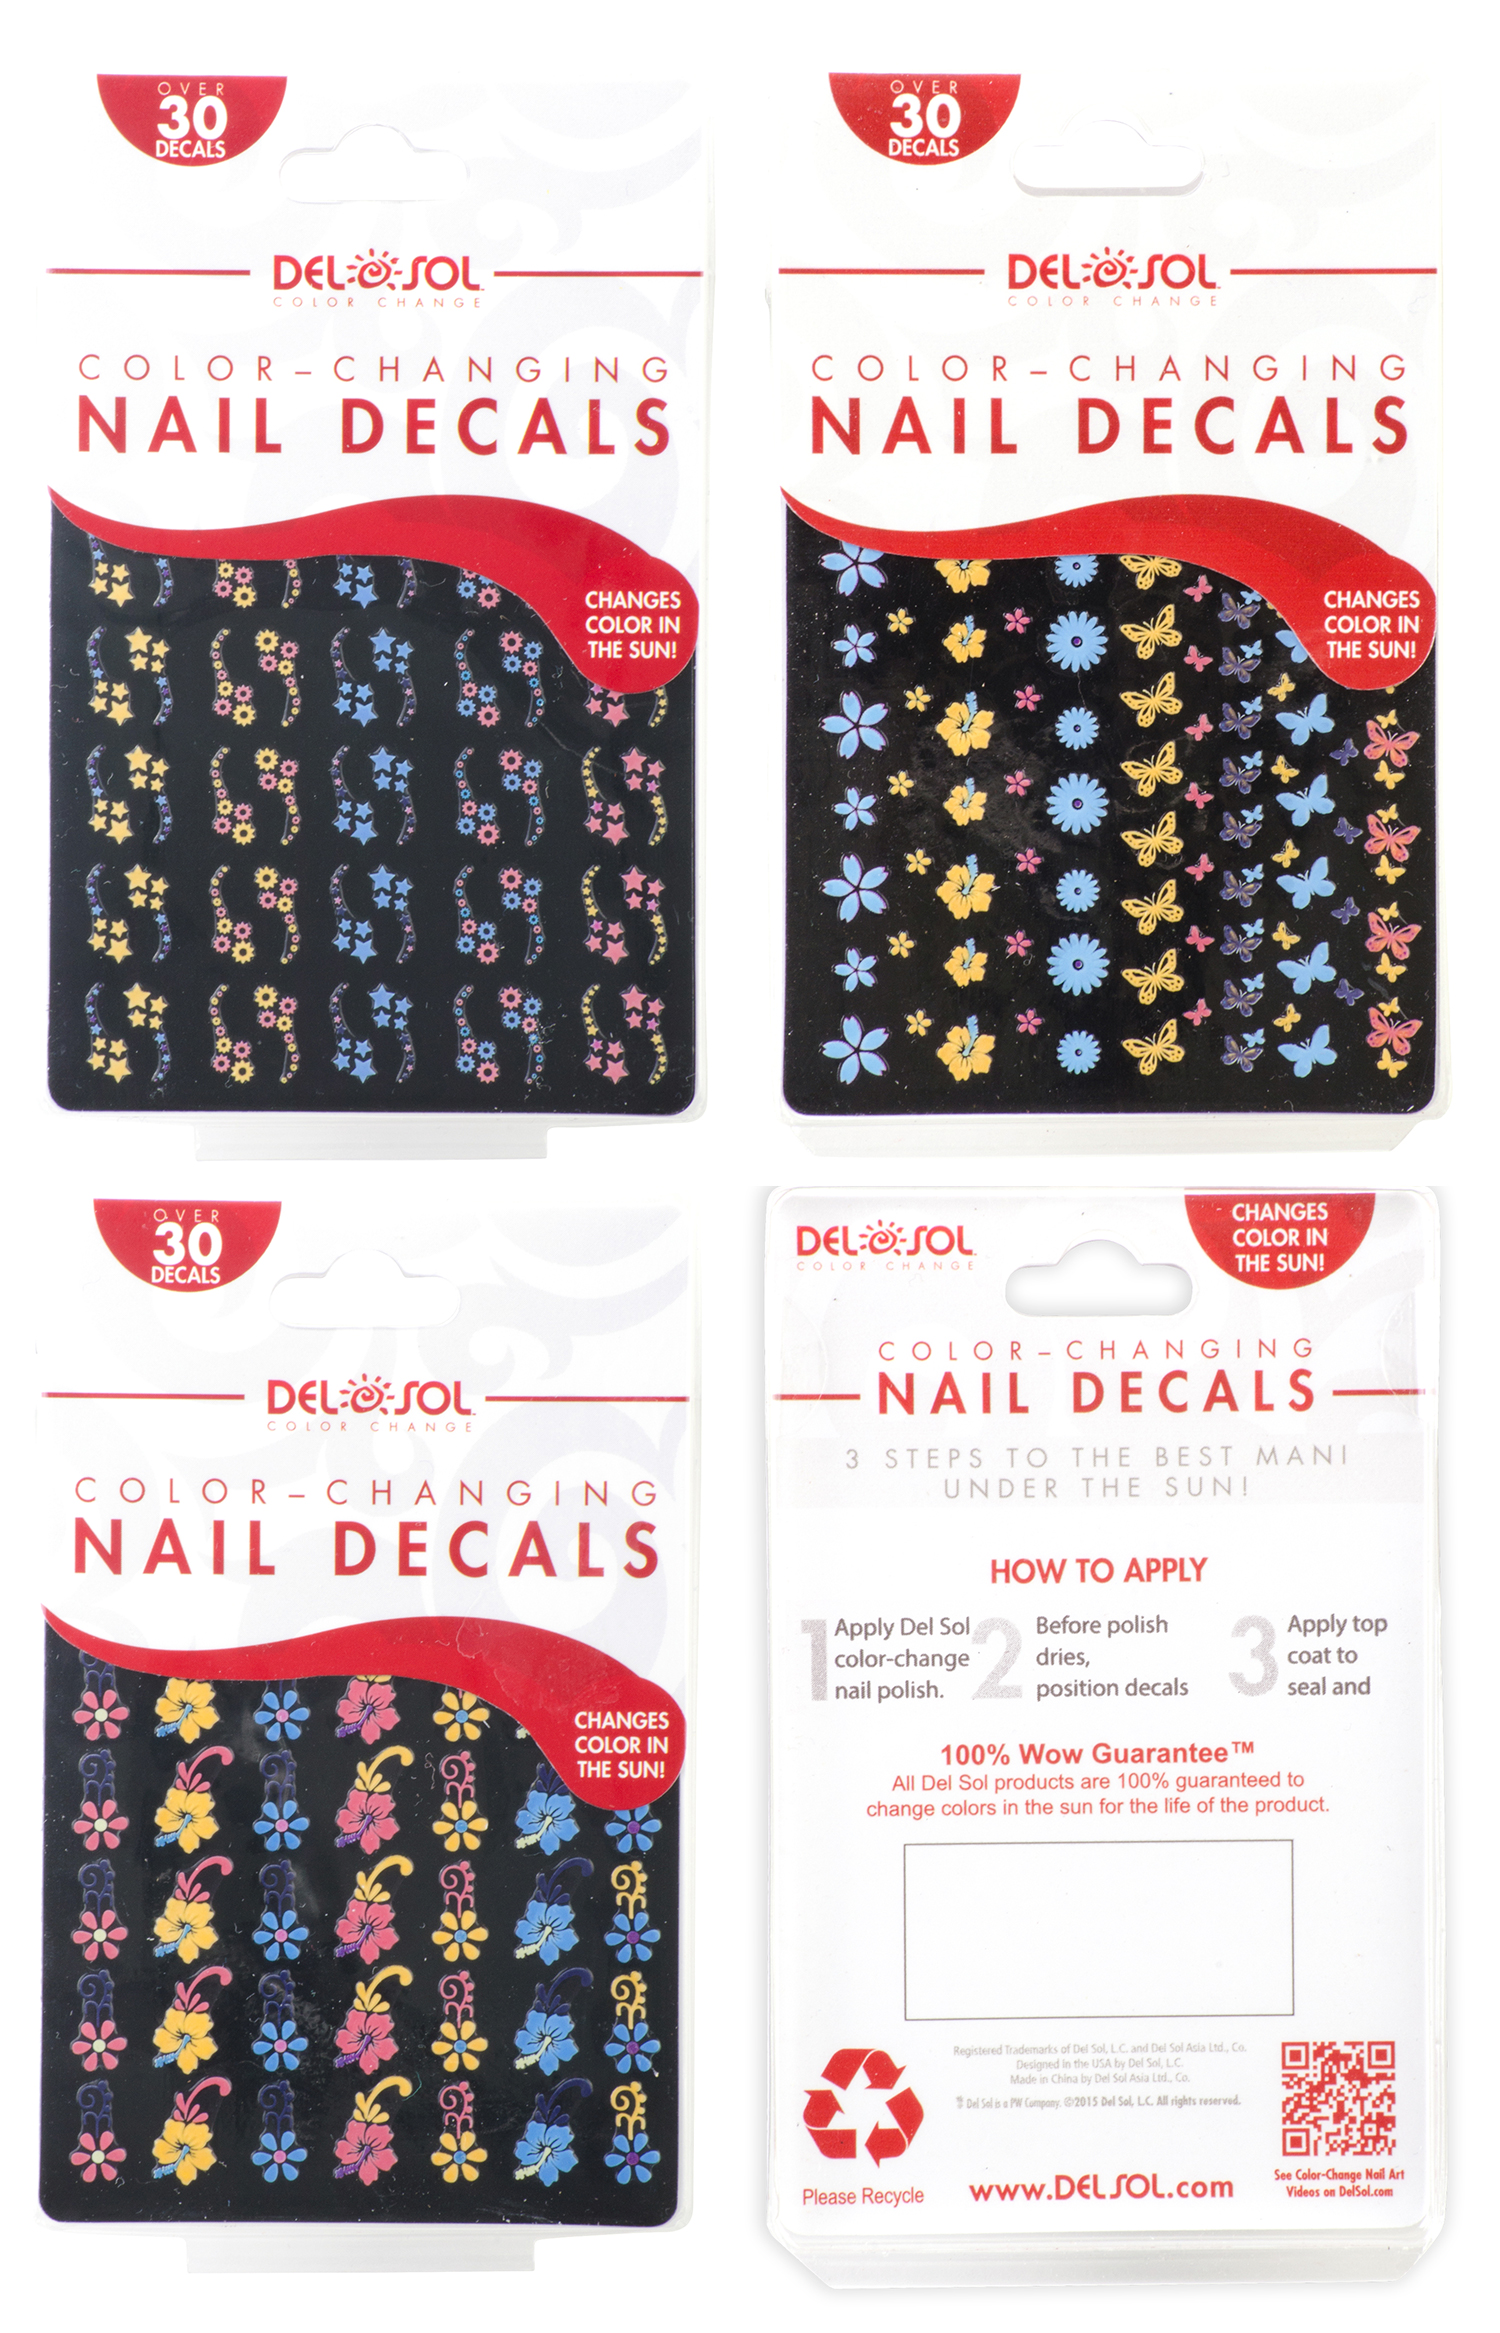 Designed to show off variety of color-changing Nail Decals that match the look and feel of the Del Sol Nail Care Family of products.